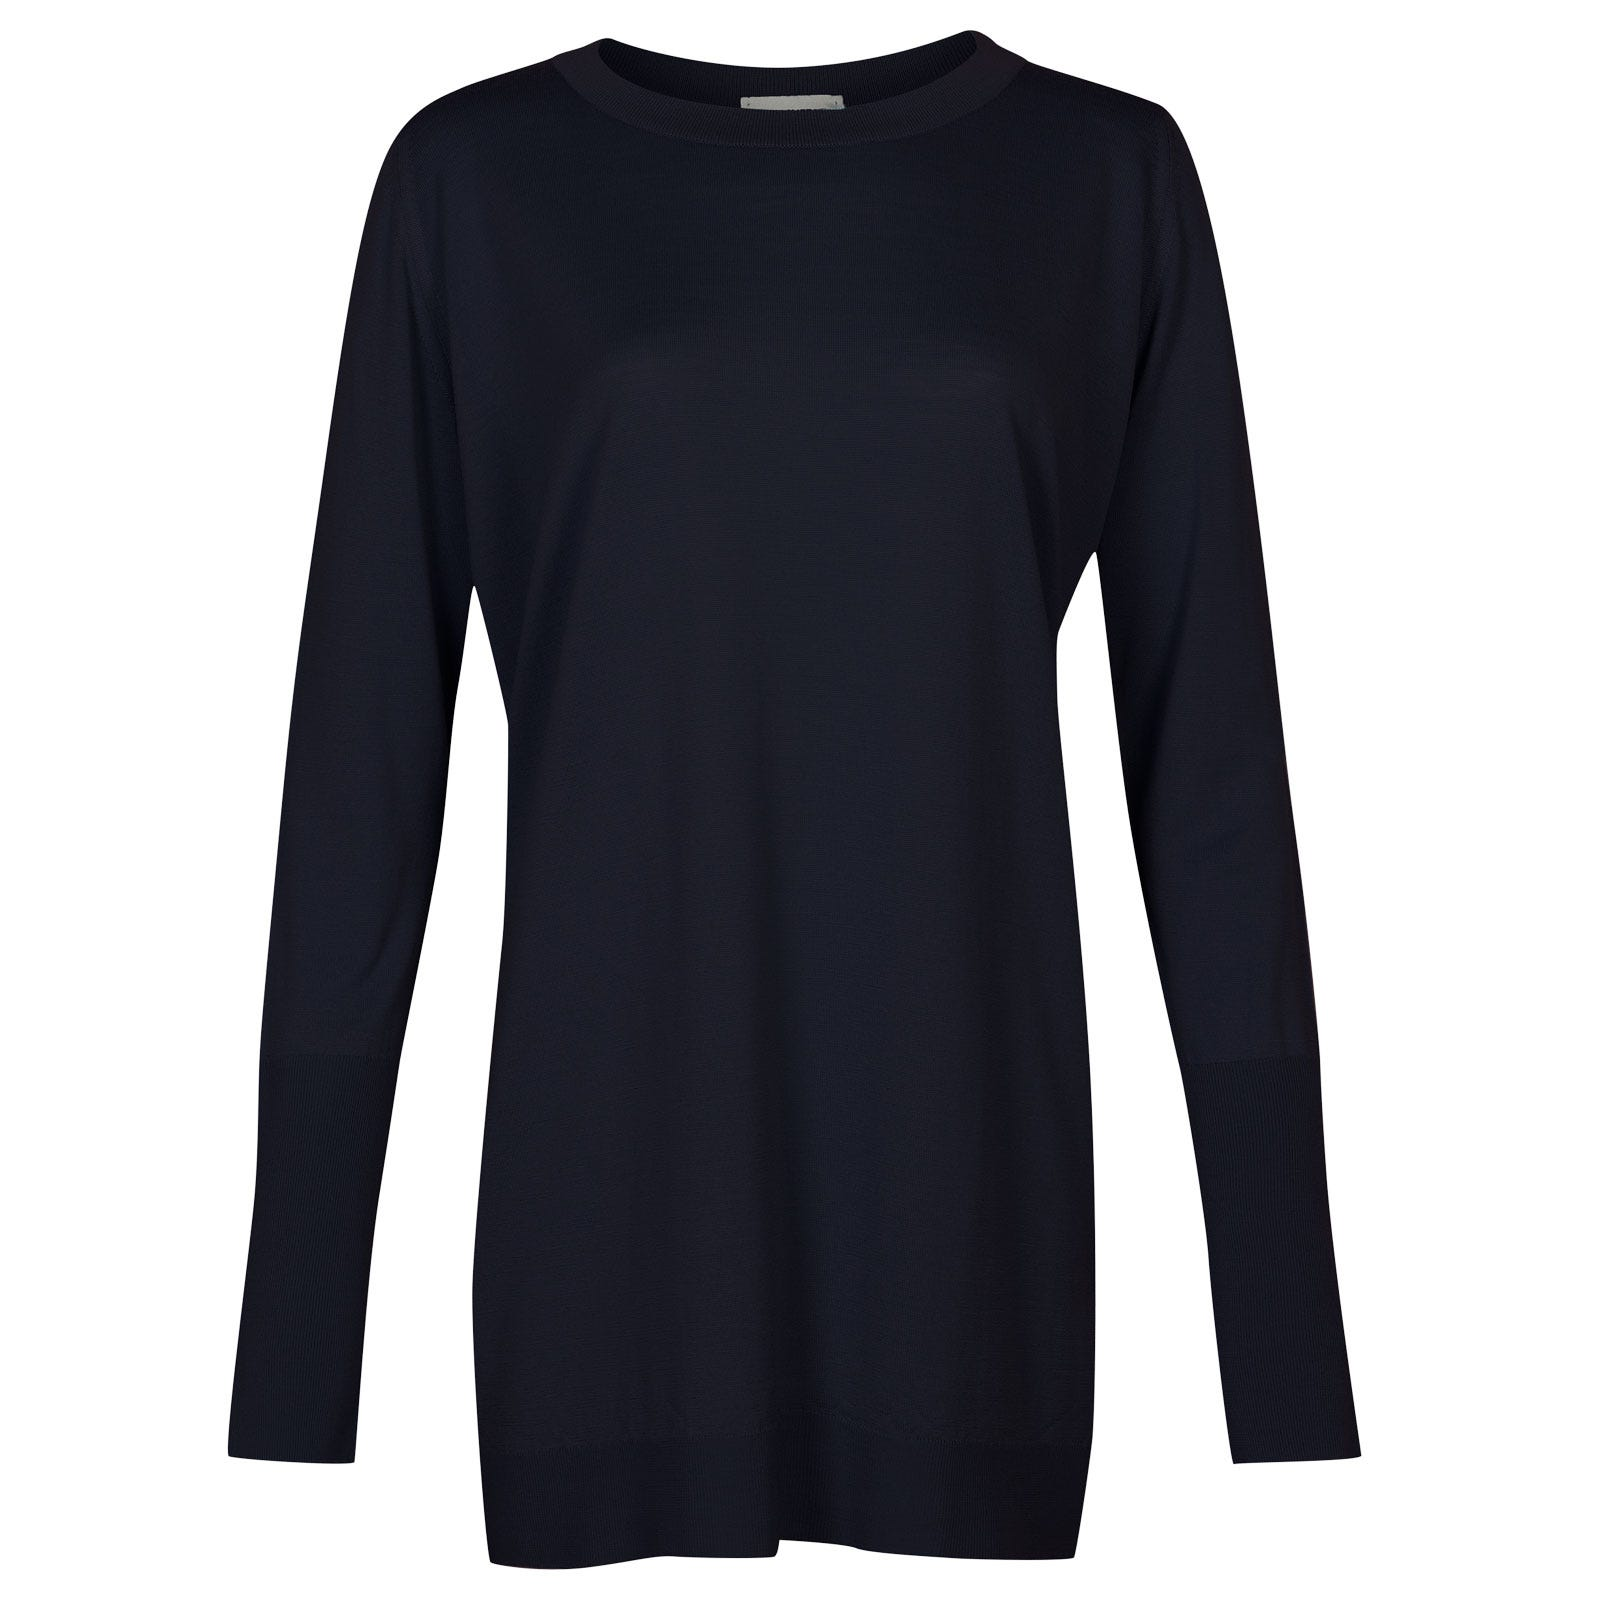 John Smedley molloy Merino Wool Sweater in Midnight-M